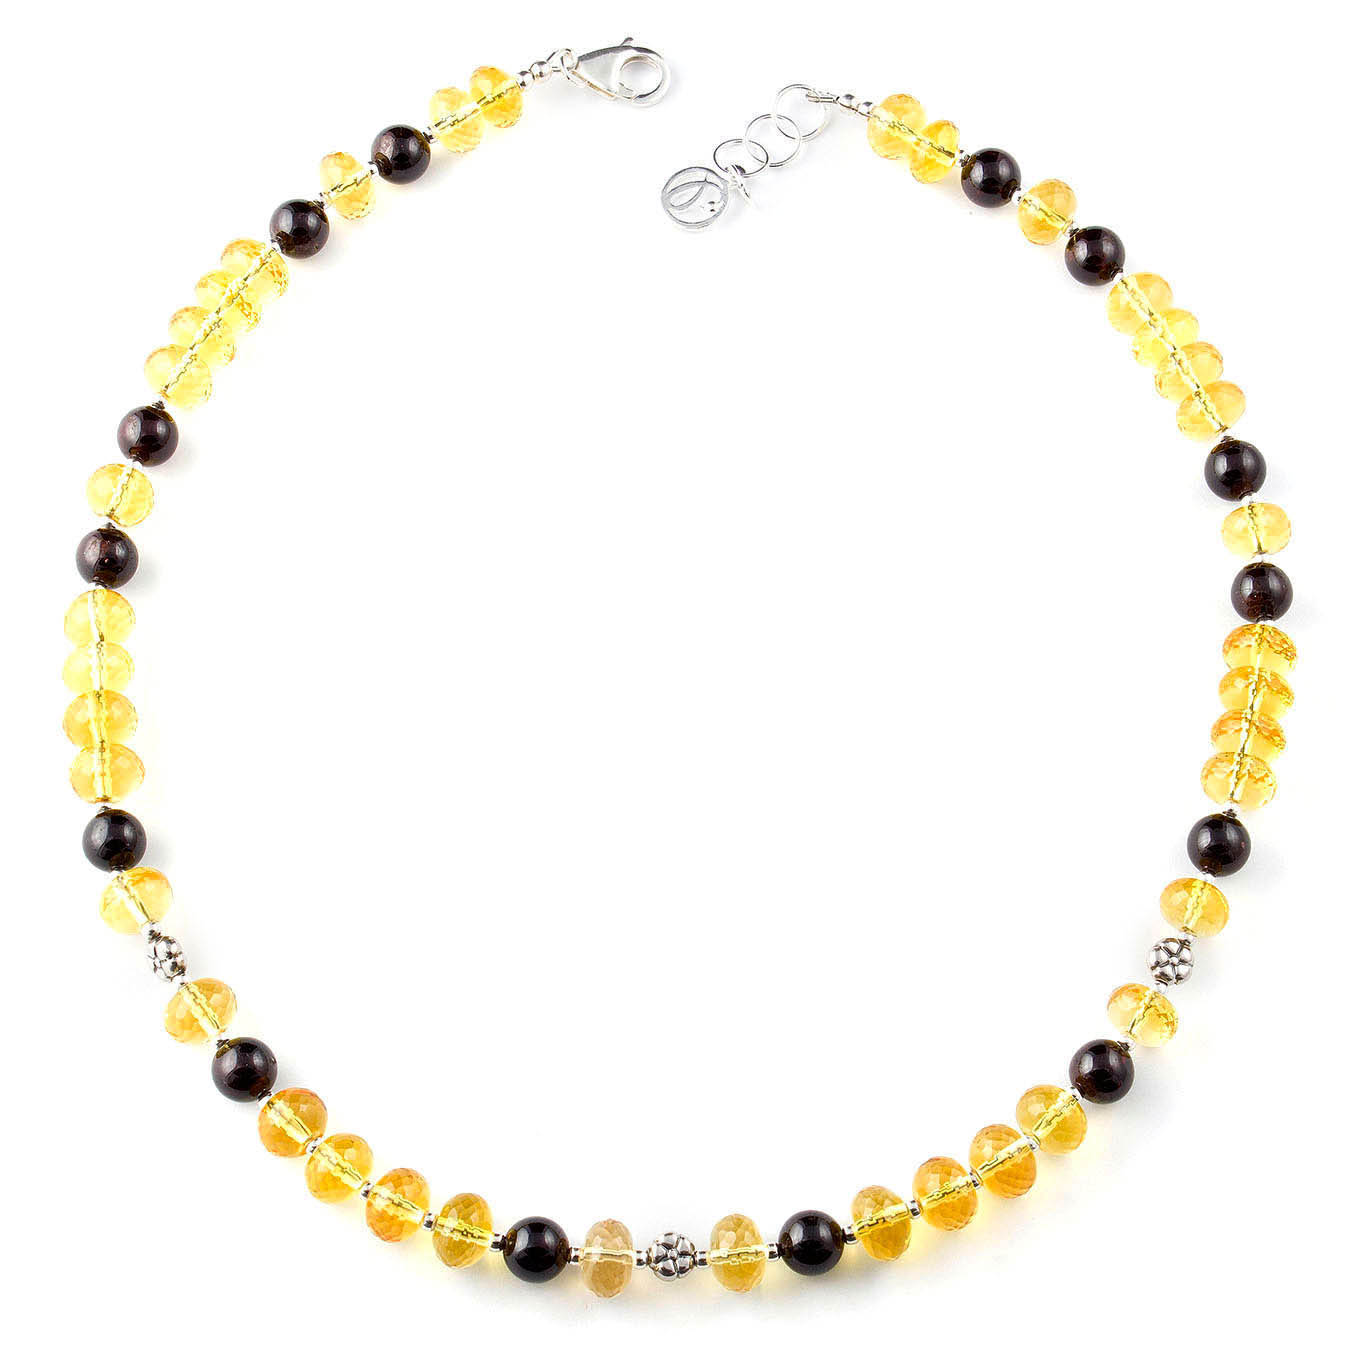 Artisan beaded birthstone necklace made of citrine, garnet and bali